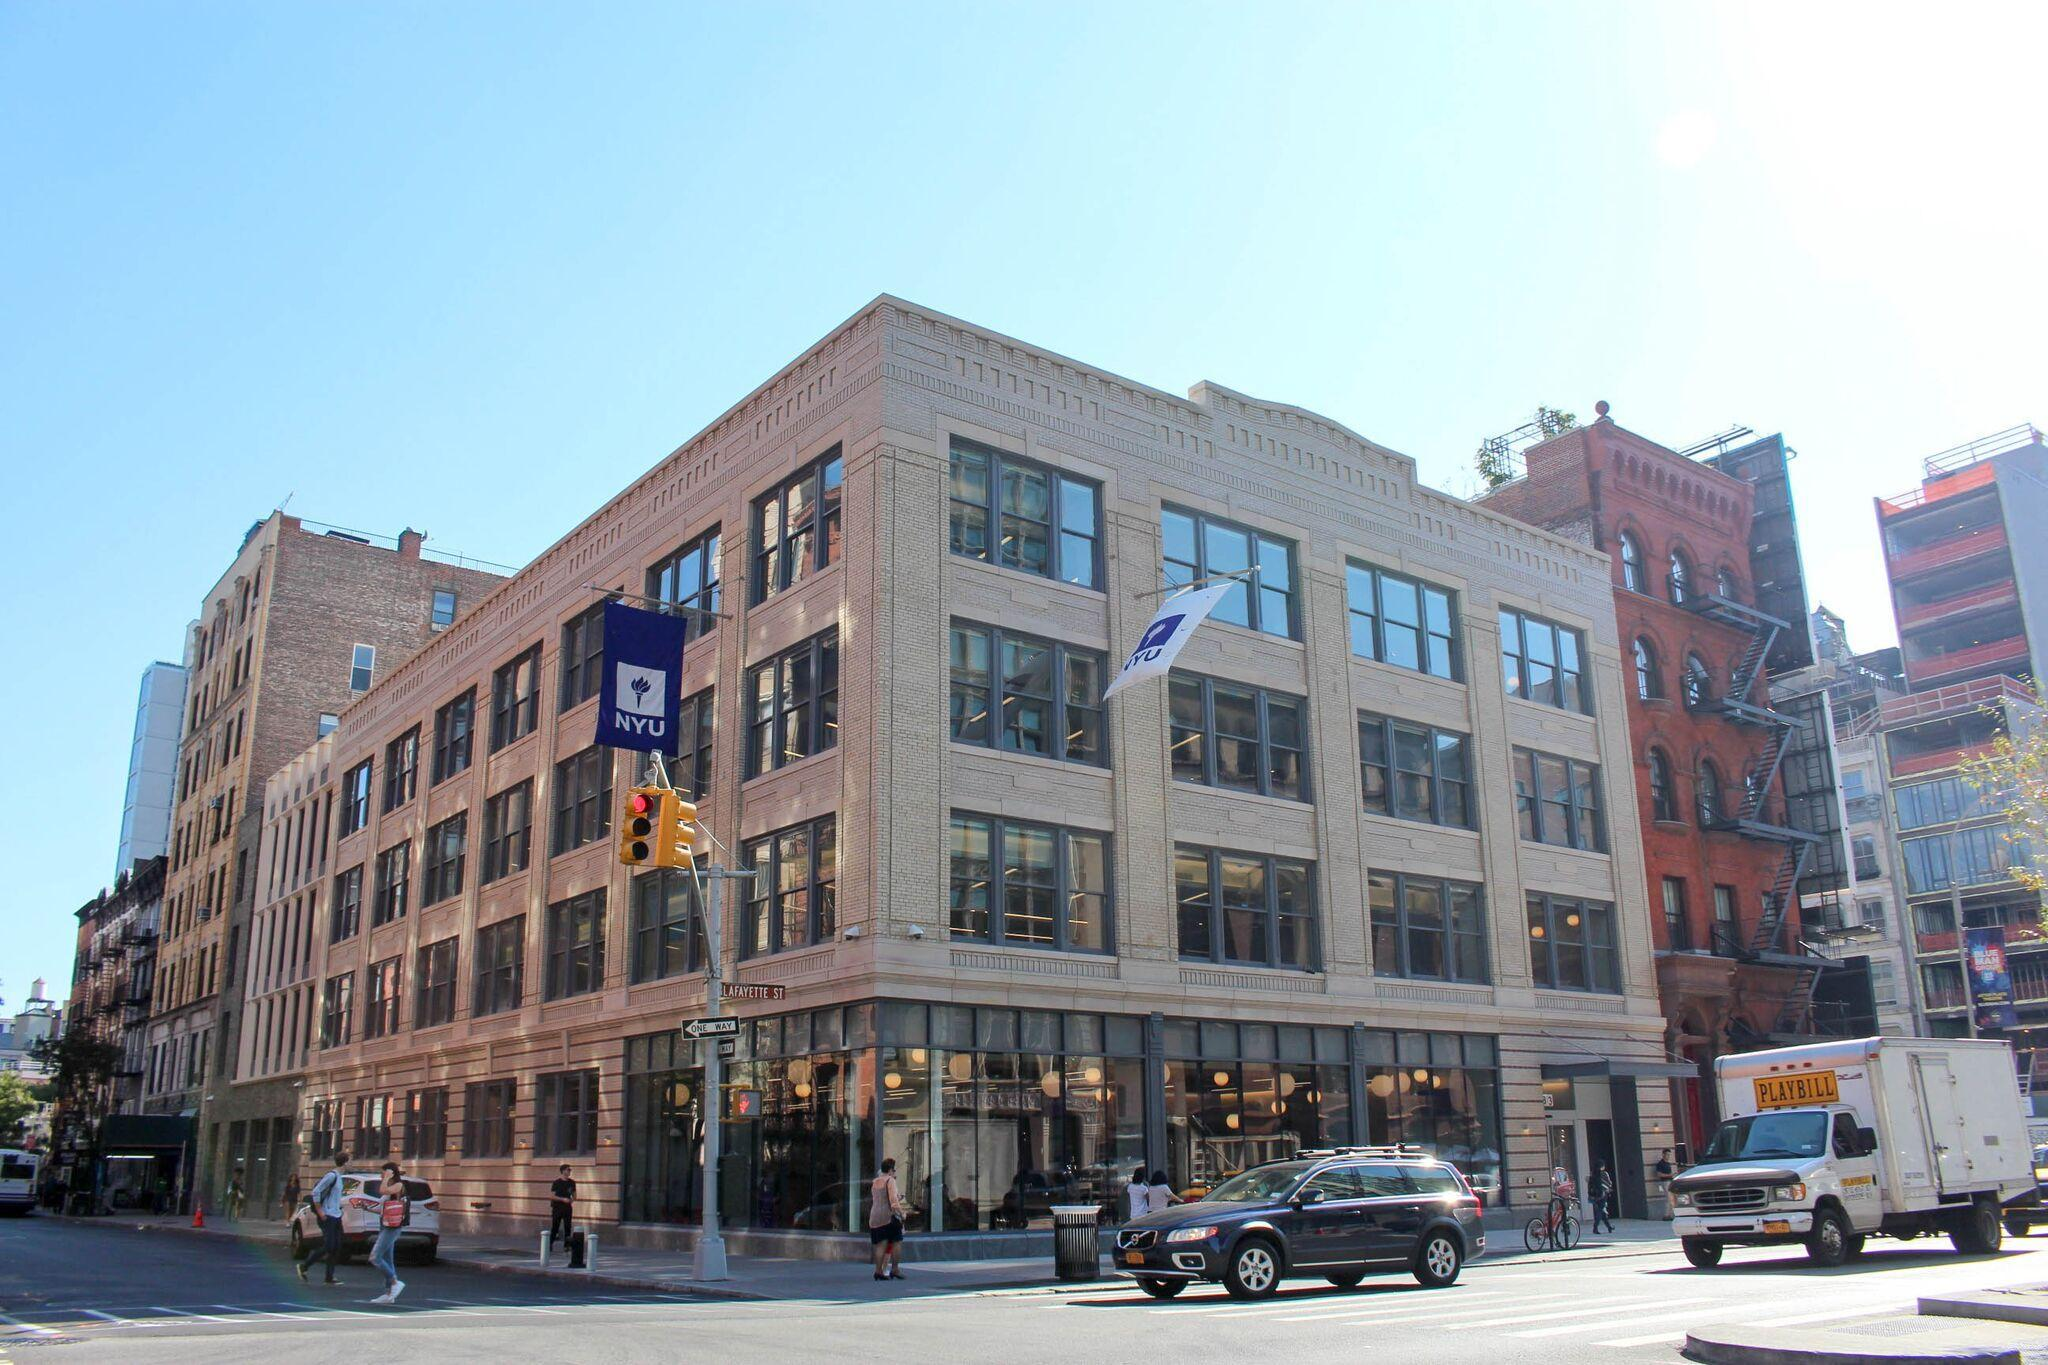 The new StudentLink Center, located at 383 Lafayette St., is only a seven-minute walk from Washington Square Park.